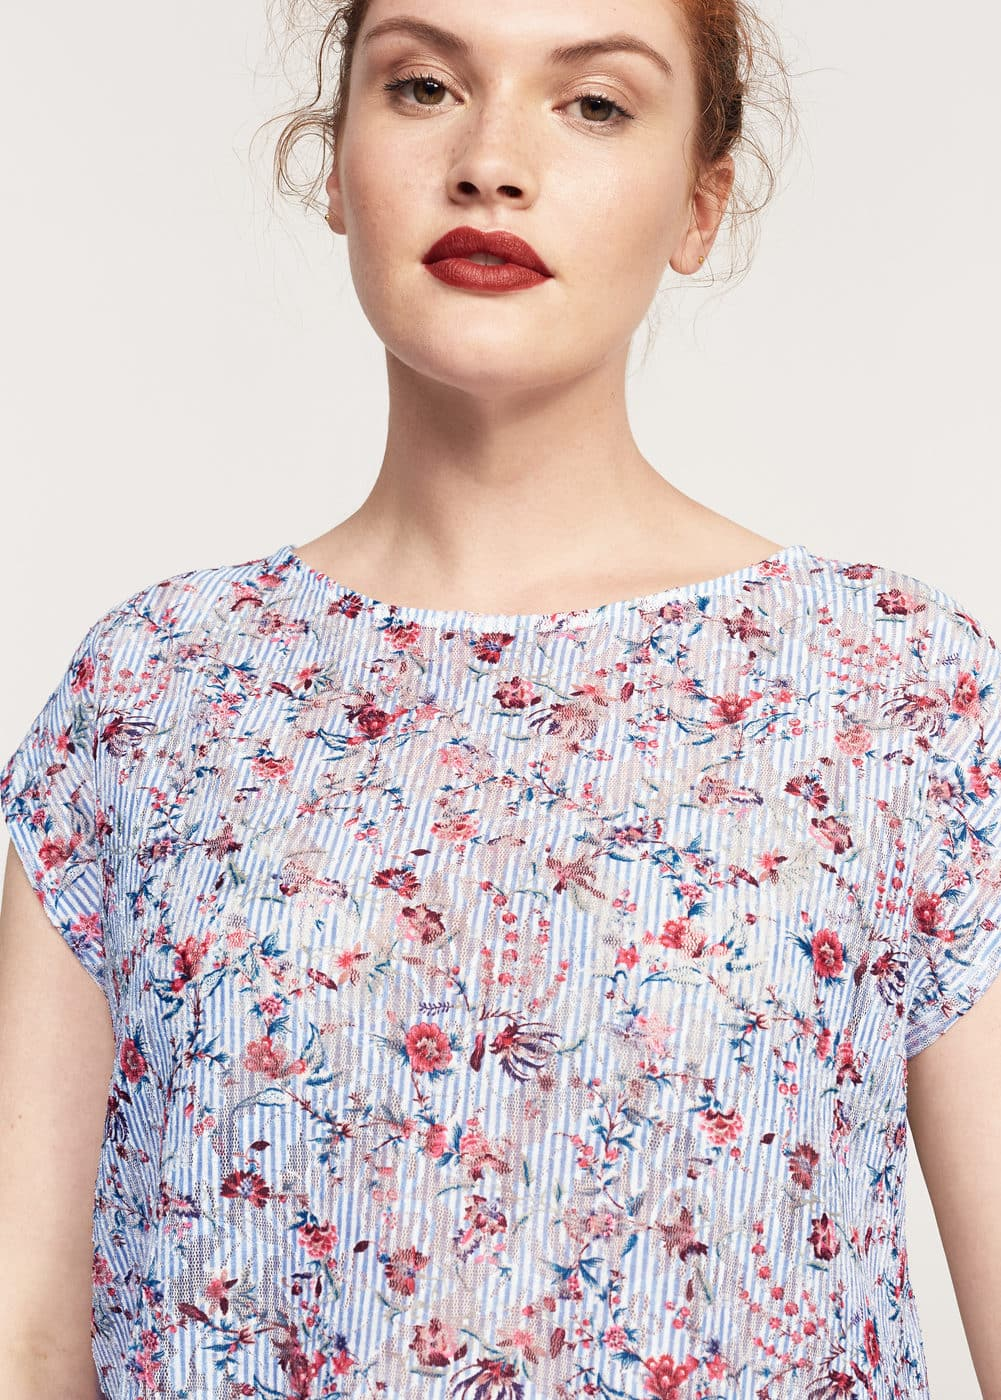 Floral lace t-shirt | VIOLETA BY MNG